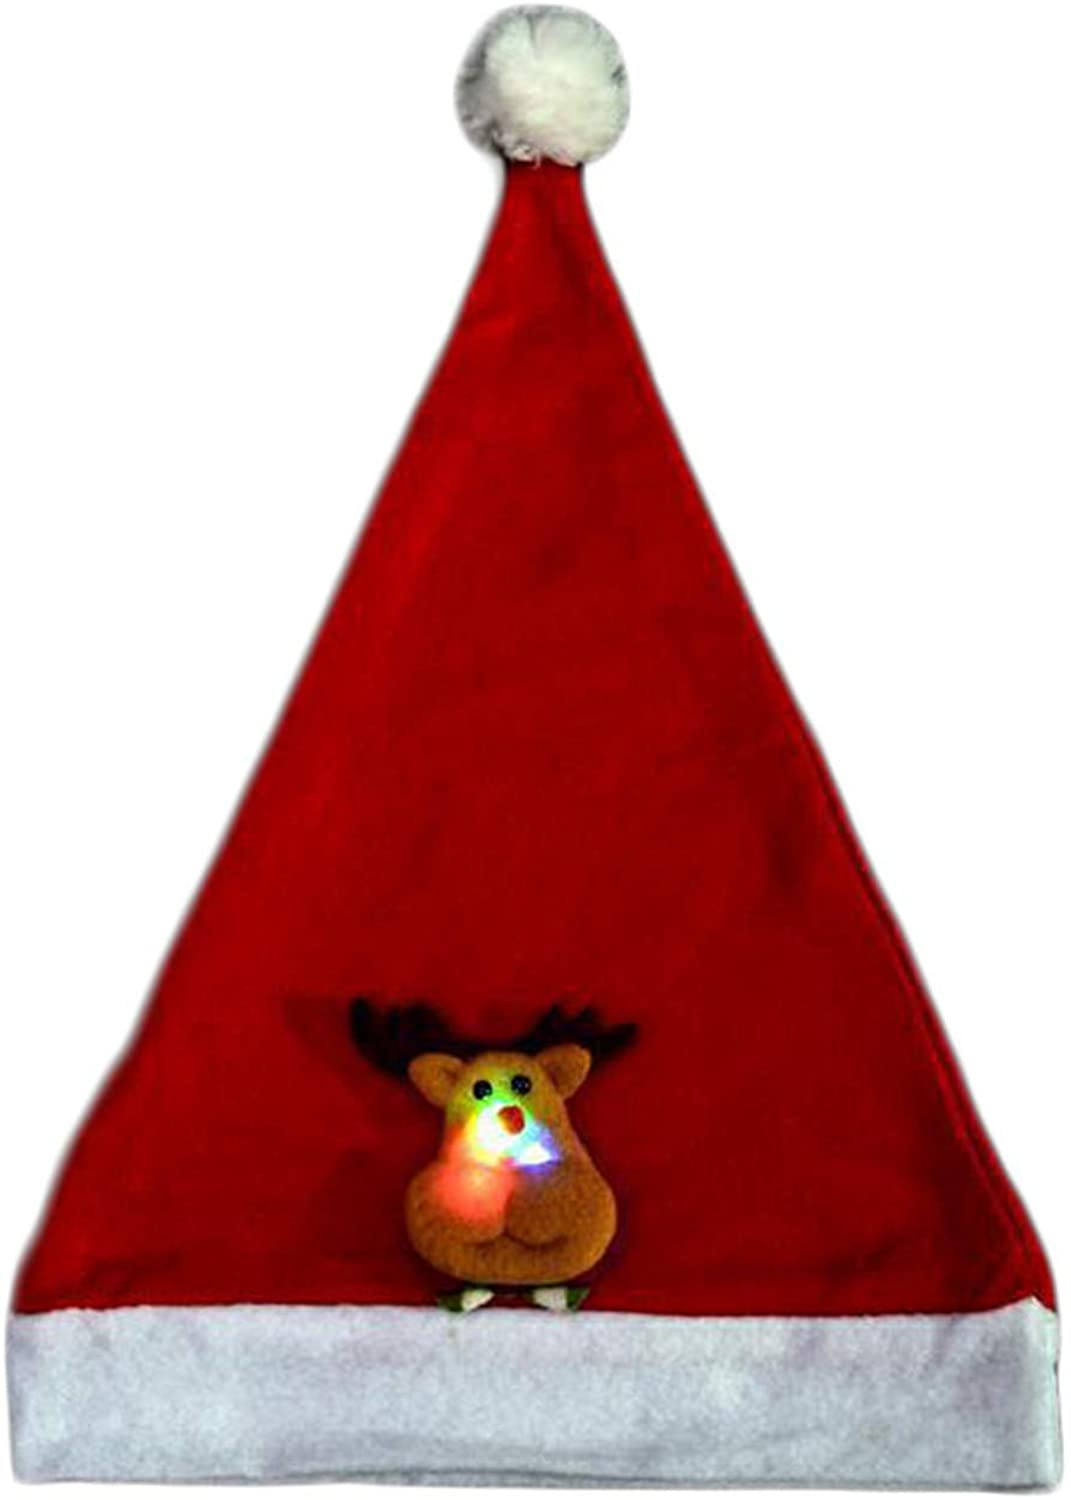 Soluo Unisex LED Light-up Ugly Christmas Hat Novelty Knitted Xmas Party Cap Blinking Lights Holiday Hats Beanies